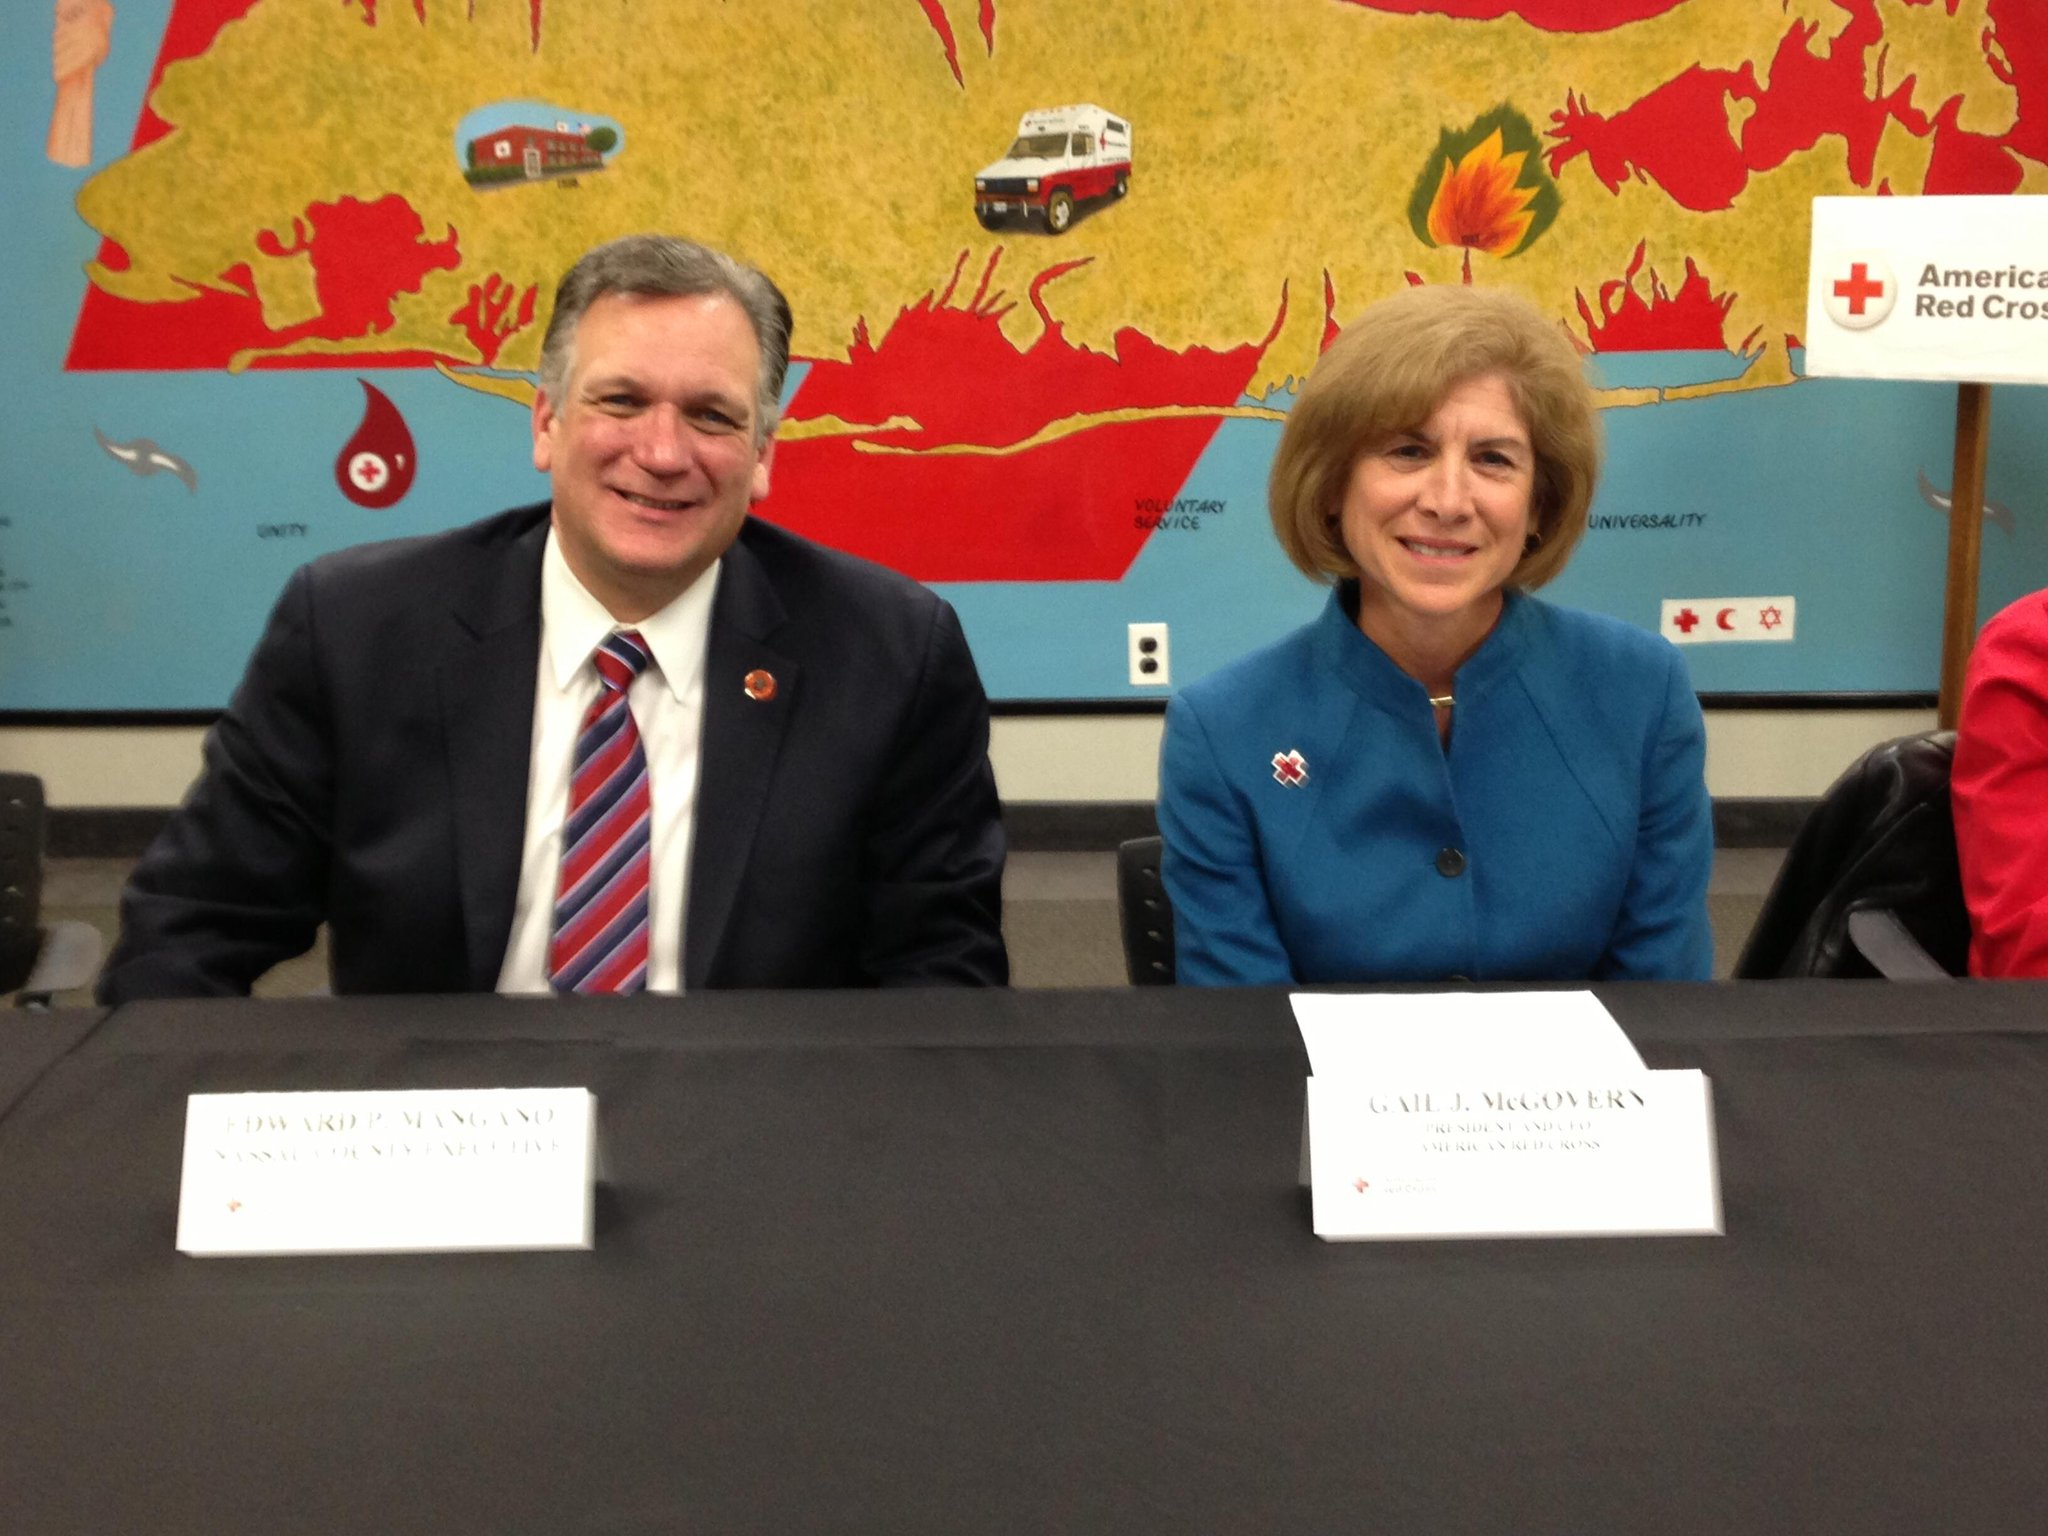 Twitter / edmangano: Meeting with American Red Cross ...